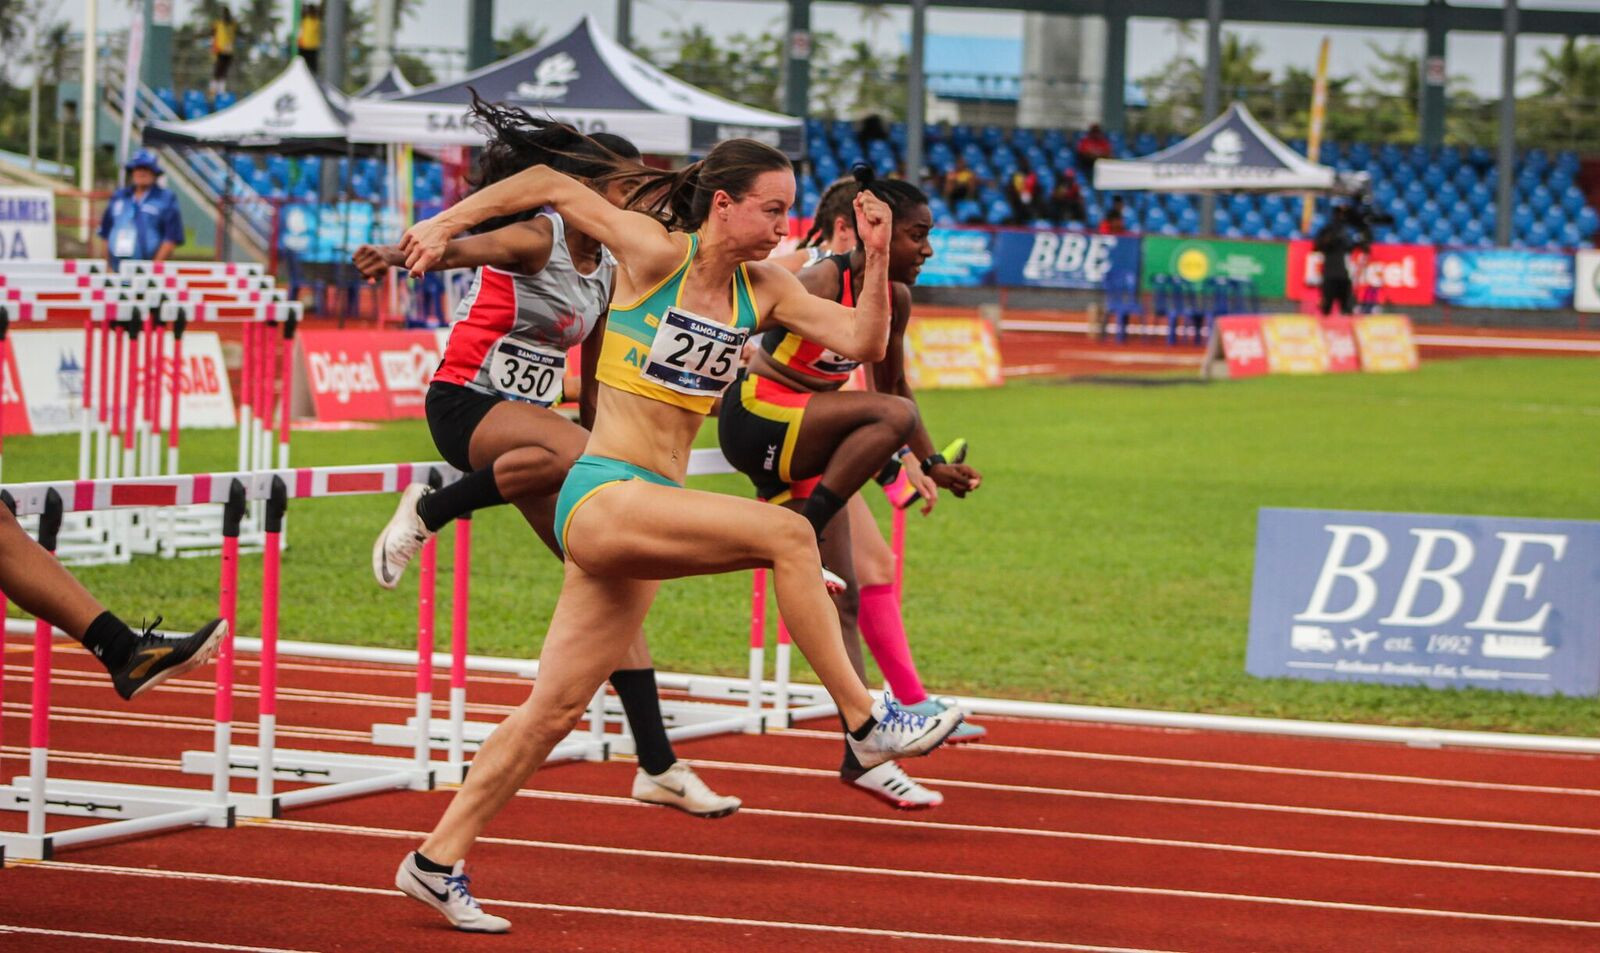 A Pacific Games record was set in the women's 100m hurdles as Australia's Brianna Beahan won gold in 13.17 ©Samoa 2019